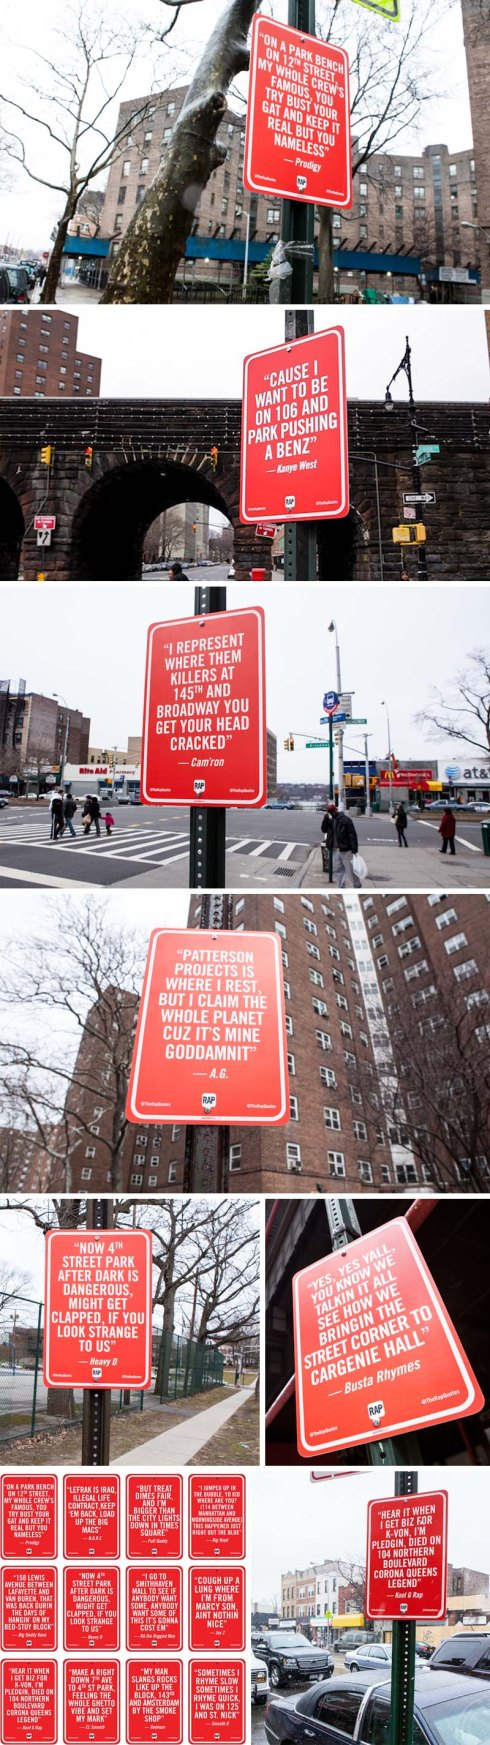 The Rap Quotes a street art project by Jay Shells, Street signs with rap quotes with locations, placed at their locations..